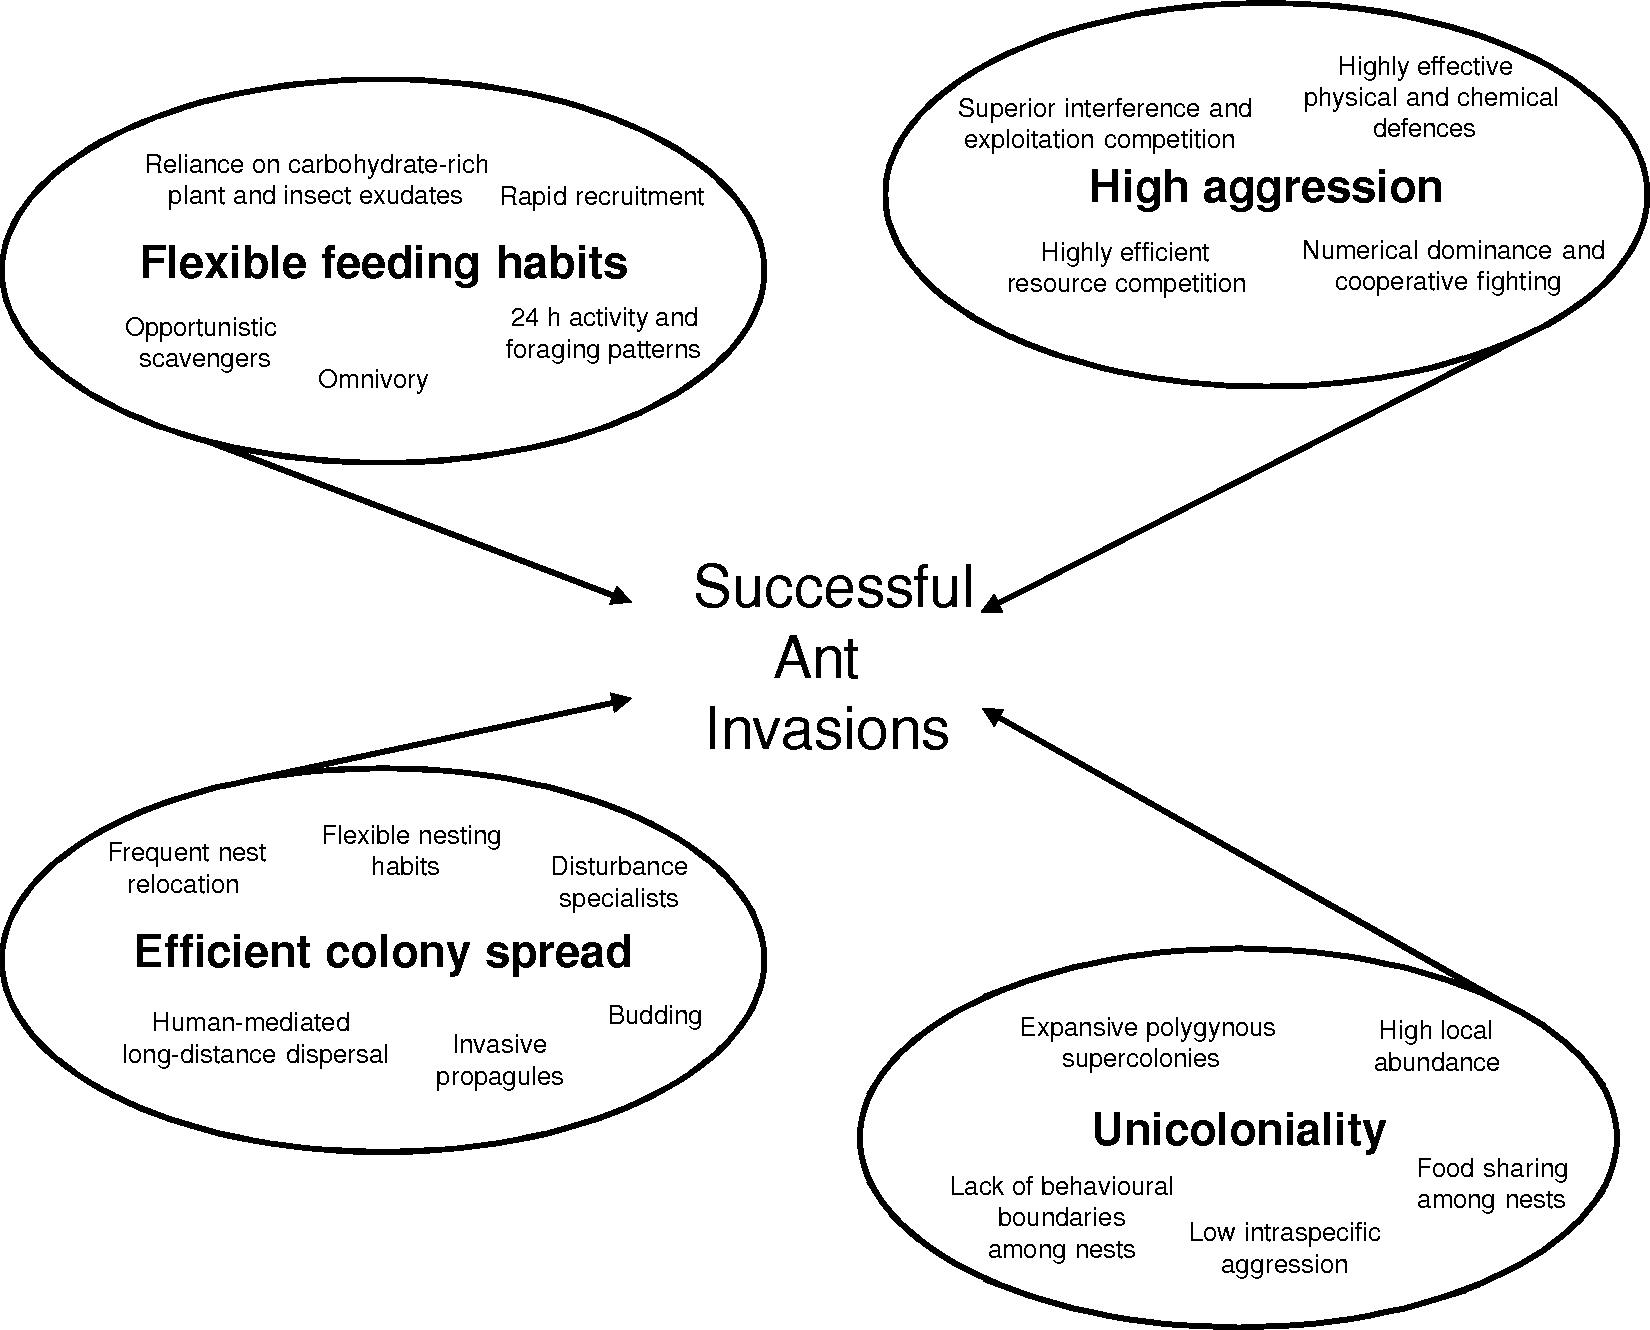 Case Studies (Part III) - Biological Invasions and Animal